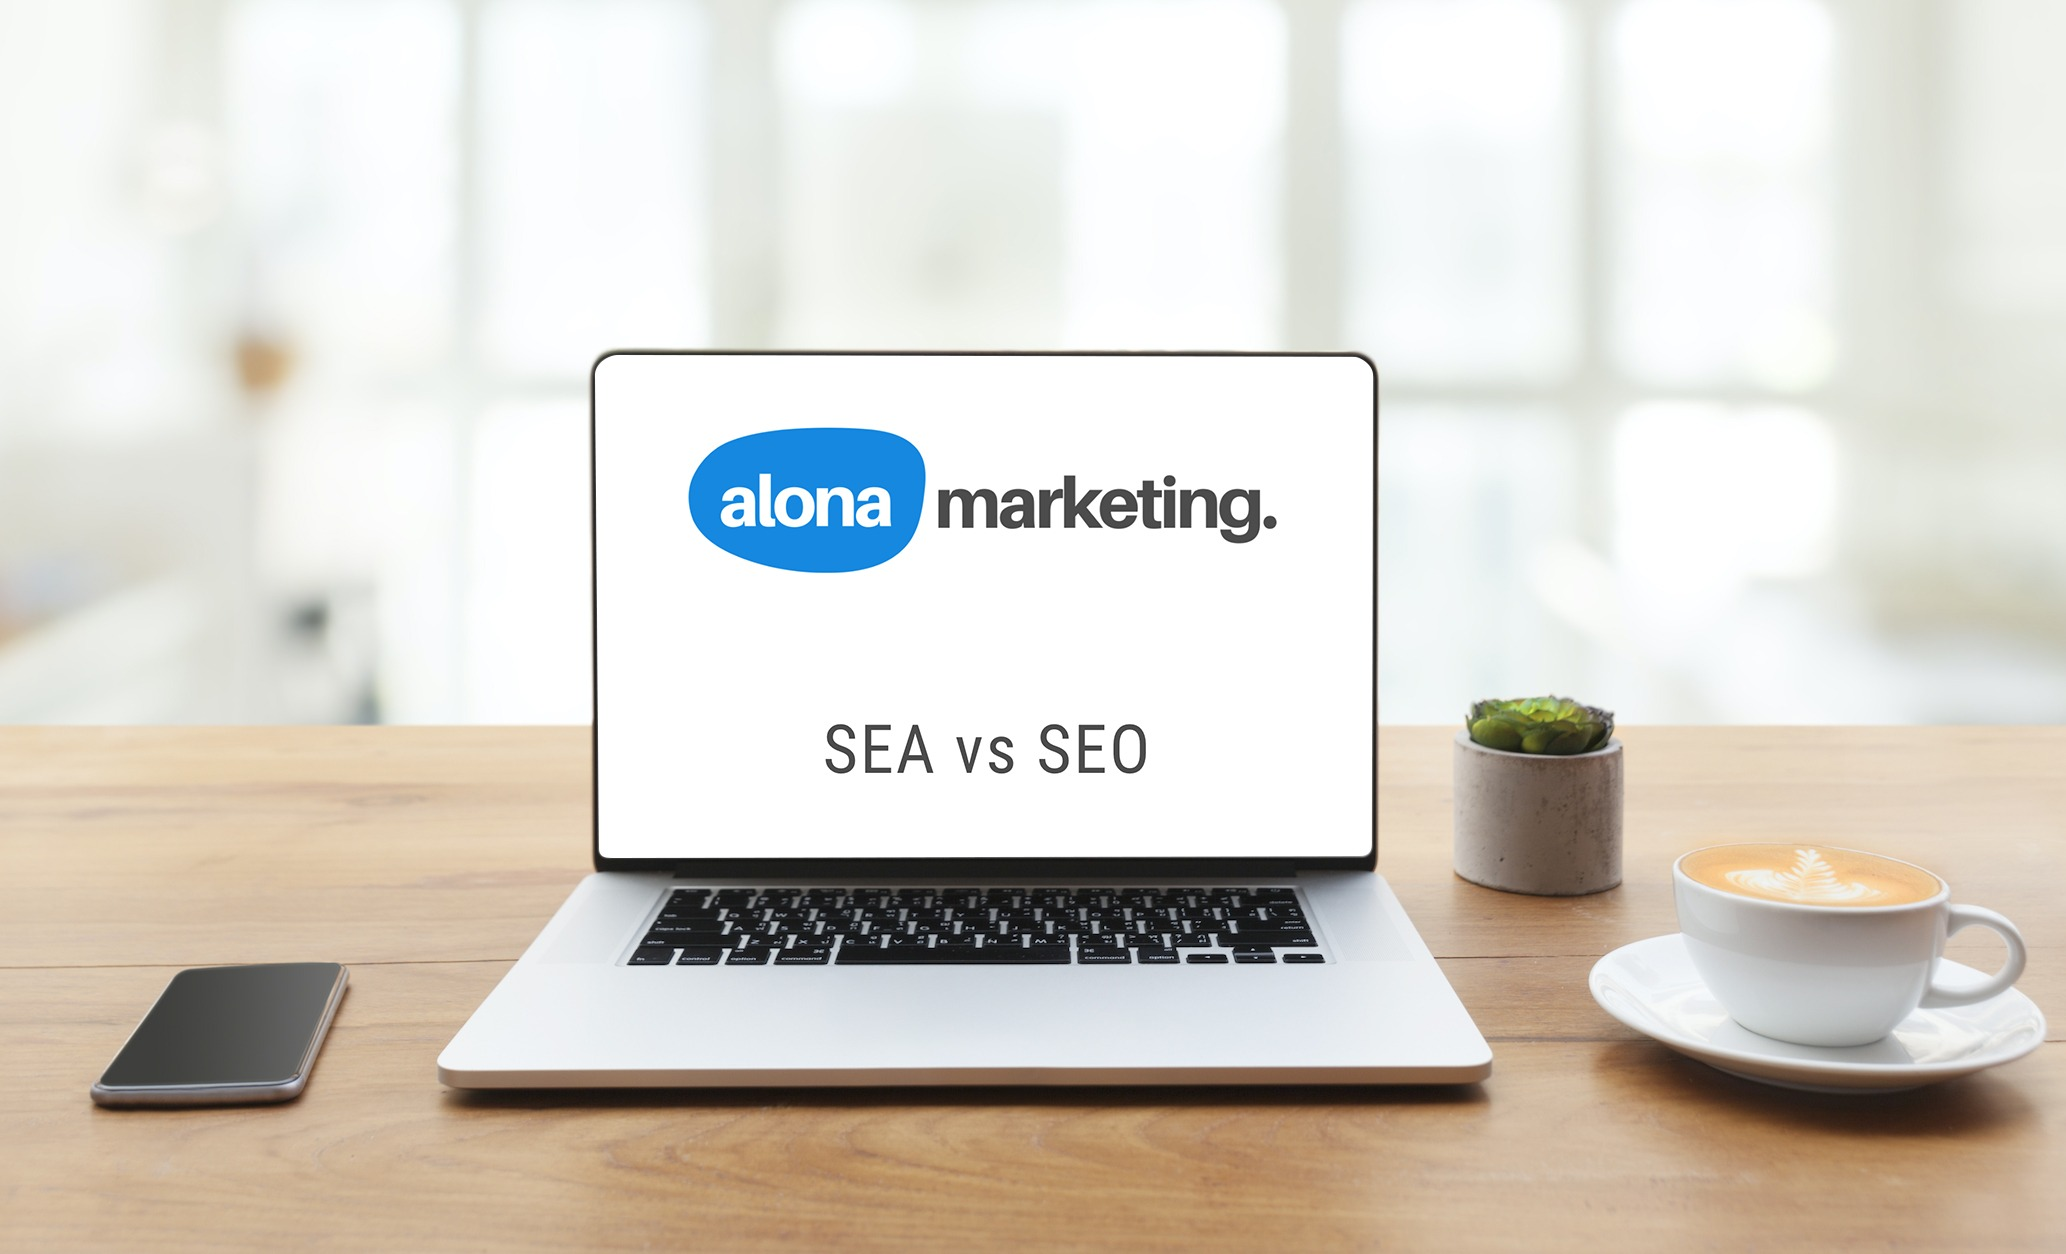 SEA vs. SEO